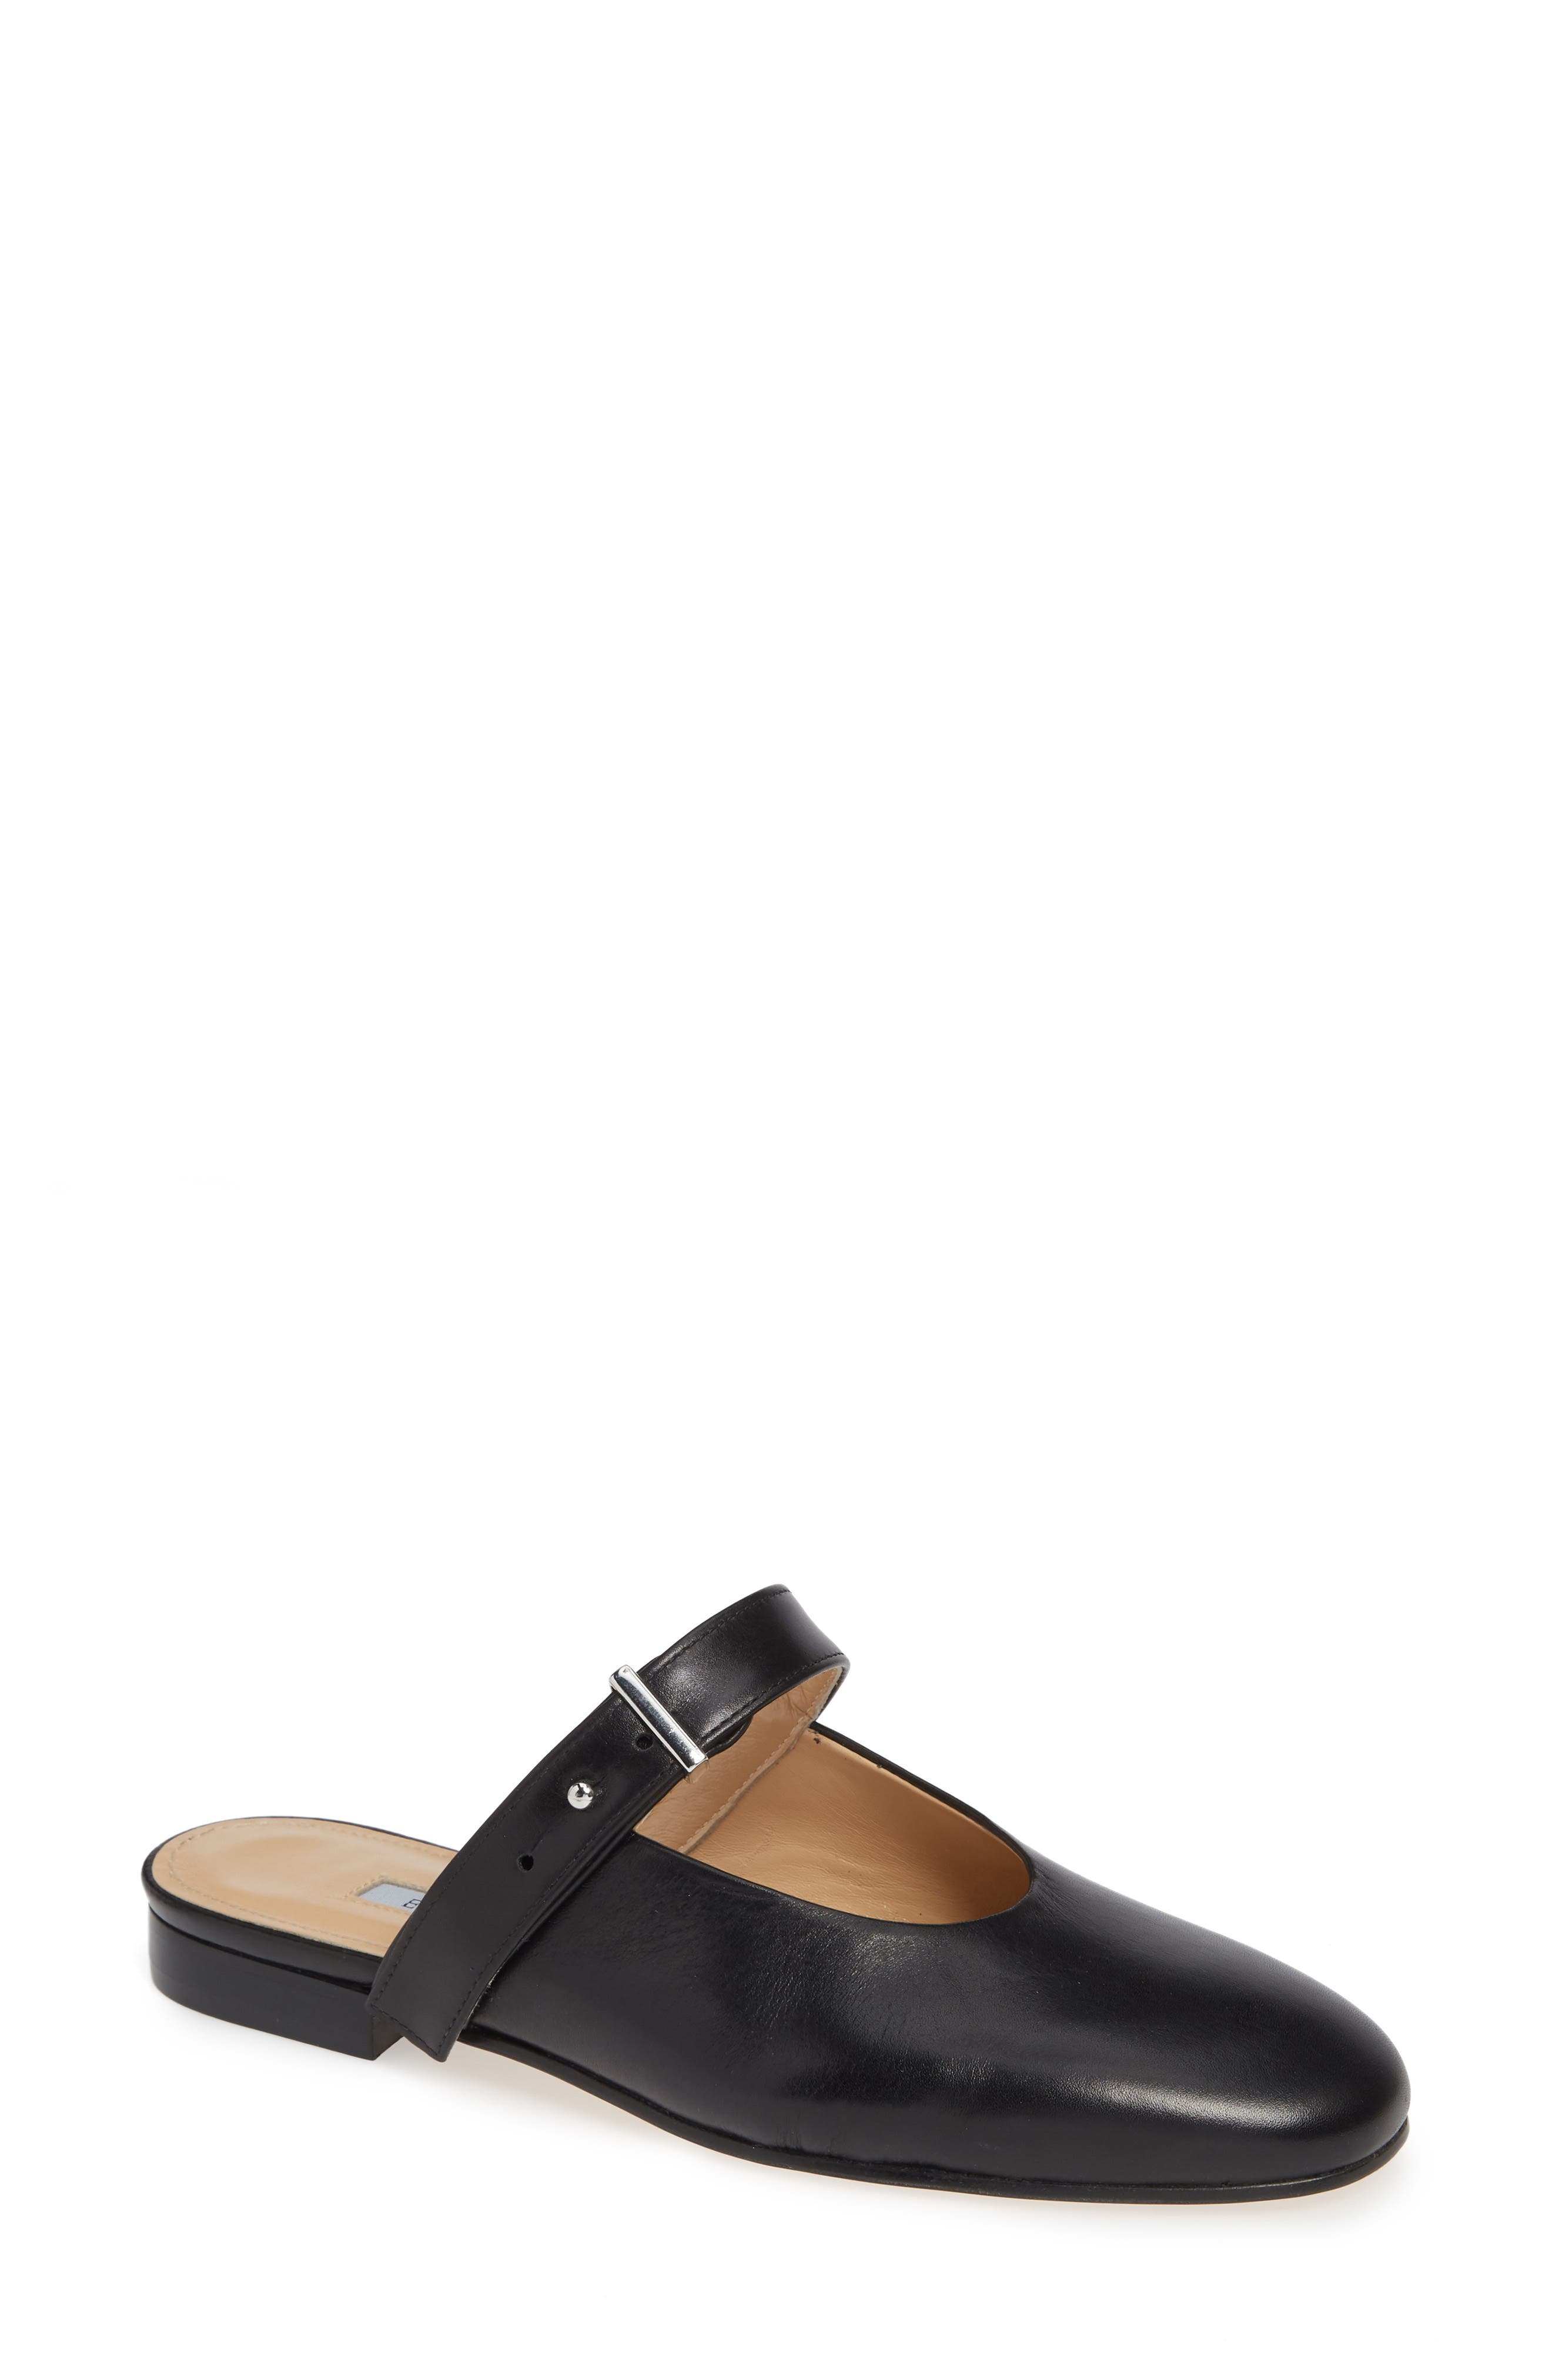 Certo Mary Jane Mule,                             Main thumbnail 1, color,                             BLACK LEATHER